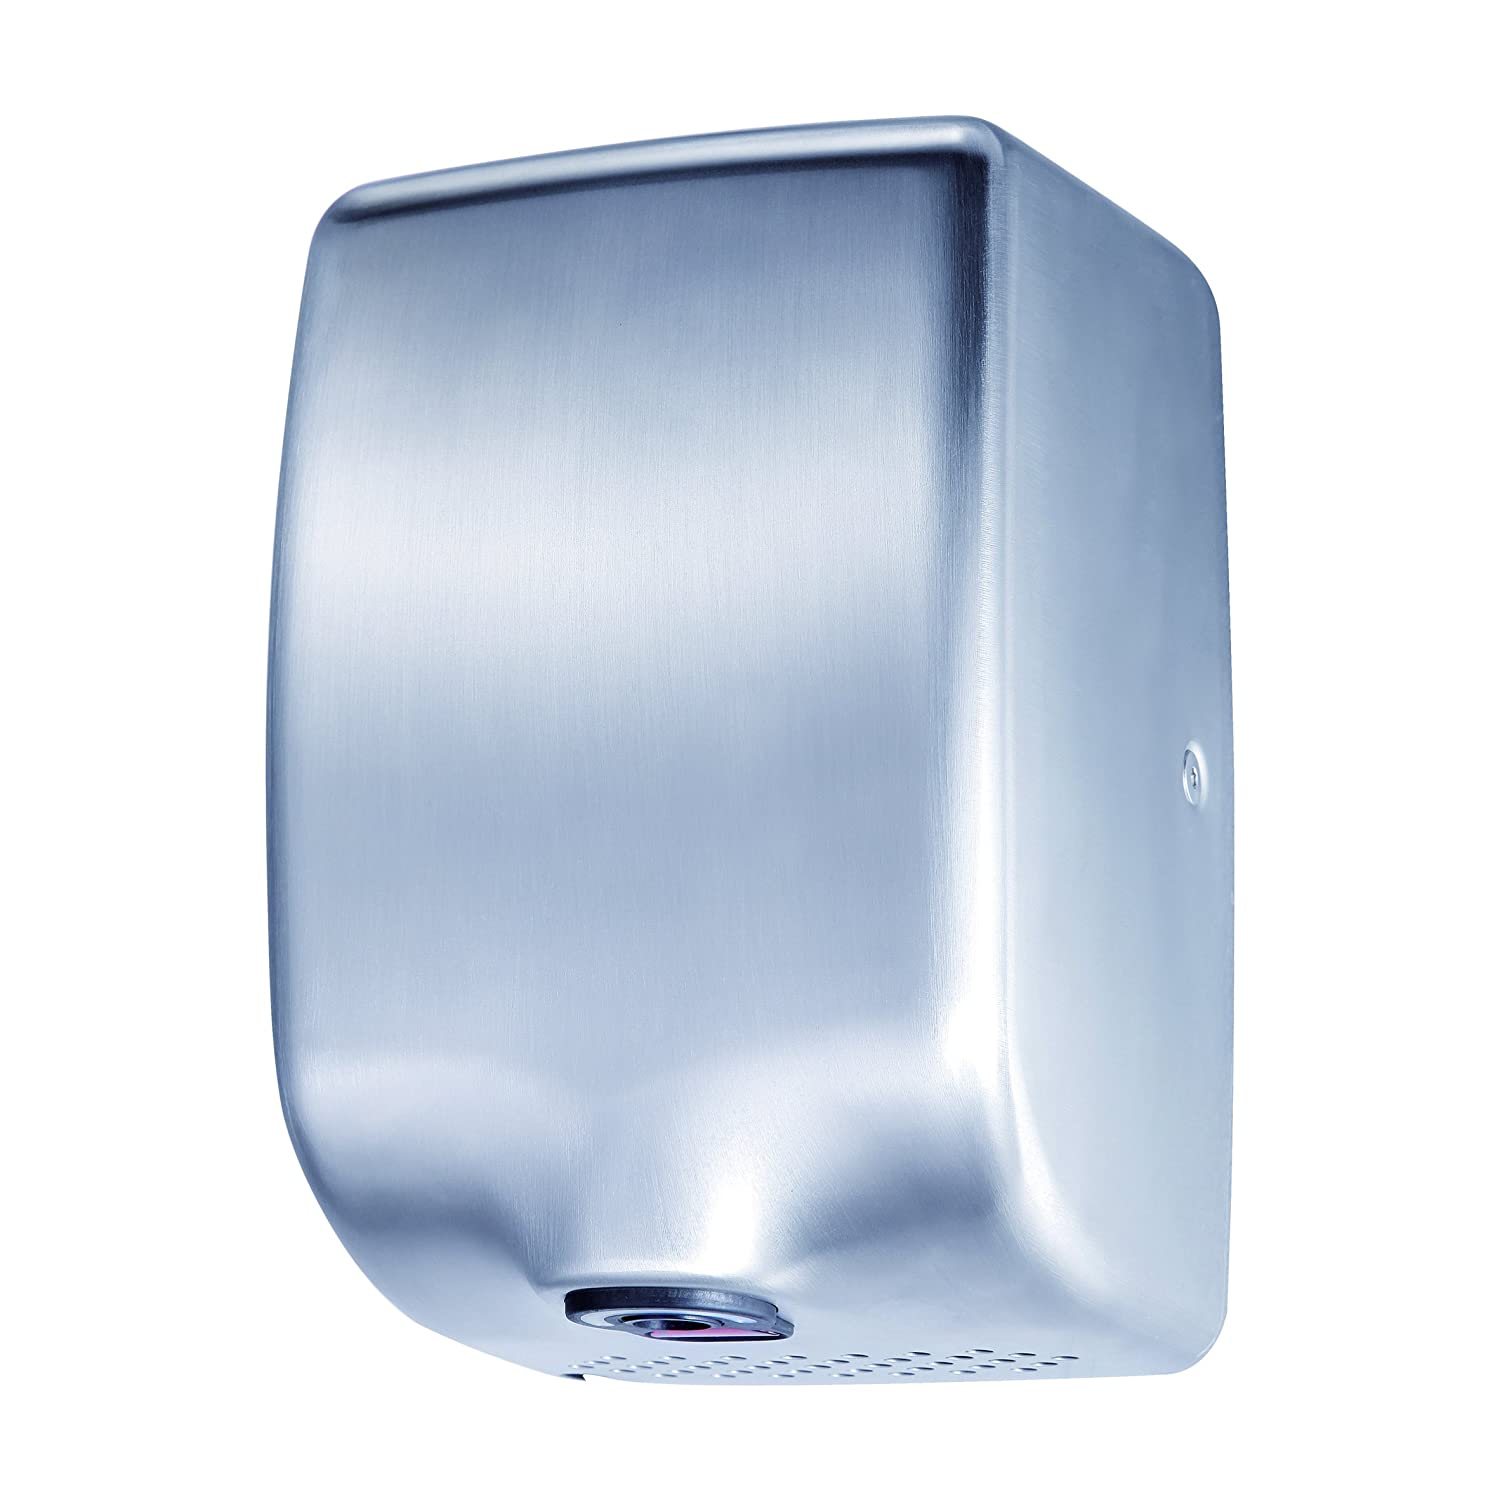 ASIALEO 110V/1350W Electric Hand Dryer,Automatic Sensor,High Speed with Low Noise 70db,Hot/Cold Air,Brushed Stainless Steel 304 Cover,Commercial Hand Dryer. kingwe